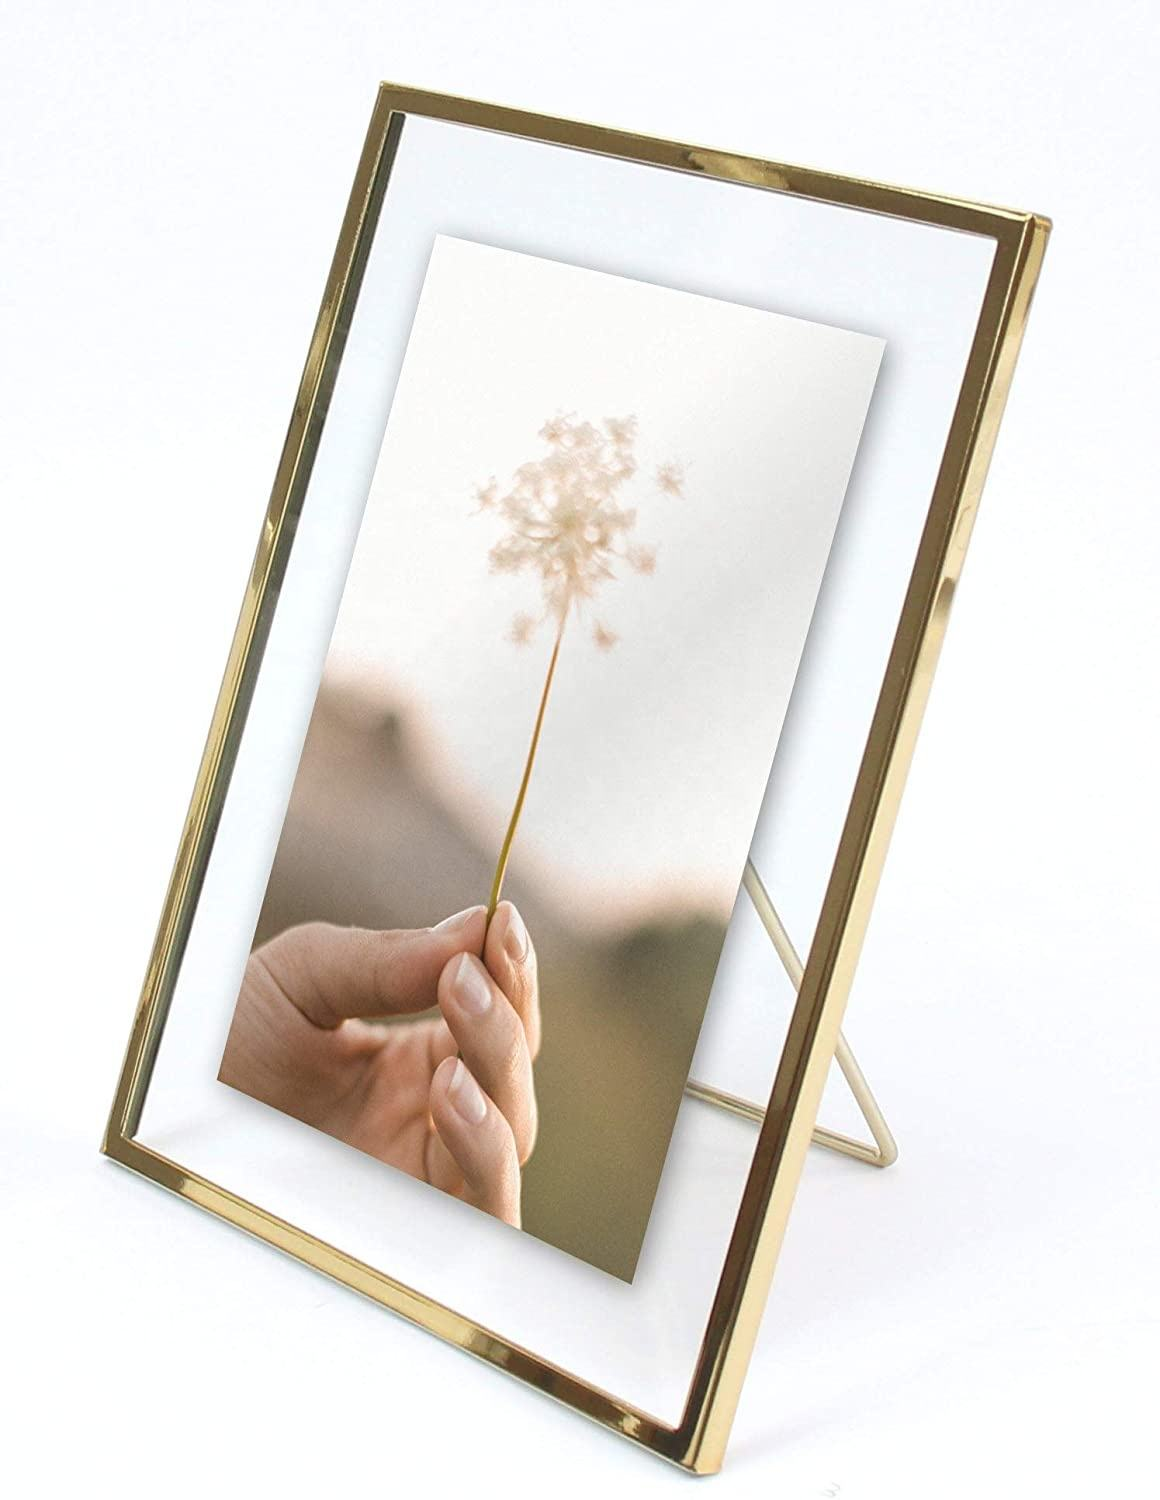 Gold Metal 4x6 Floating Pressed Glass Picture Frame with Metal Easel, Photo Display for Desk